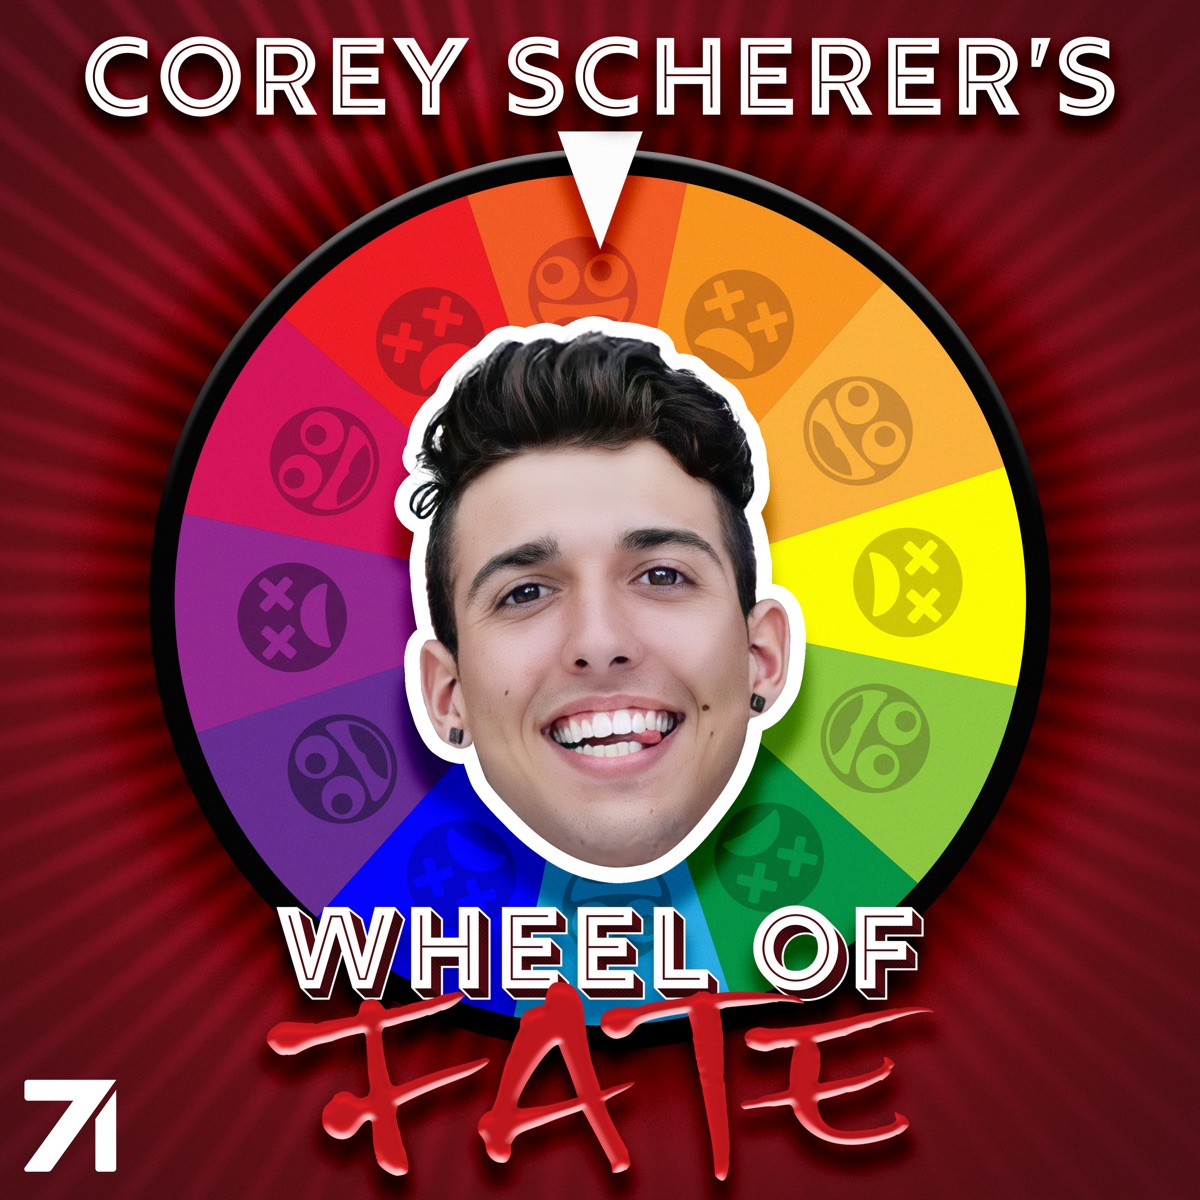 ‎Corey Scherer's Wheel of Fate